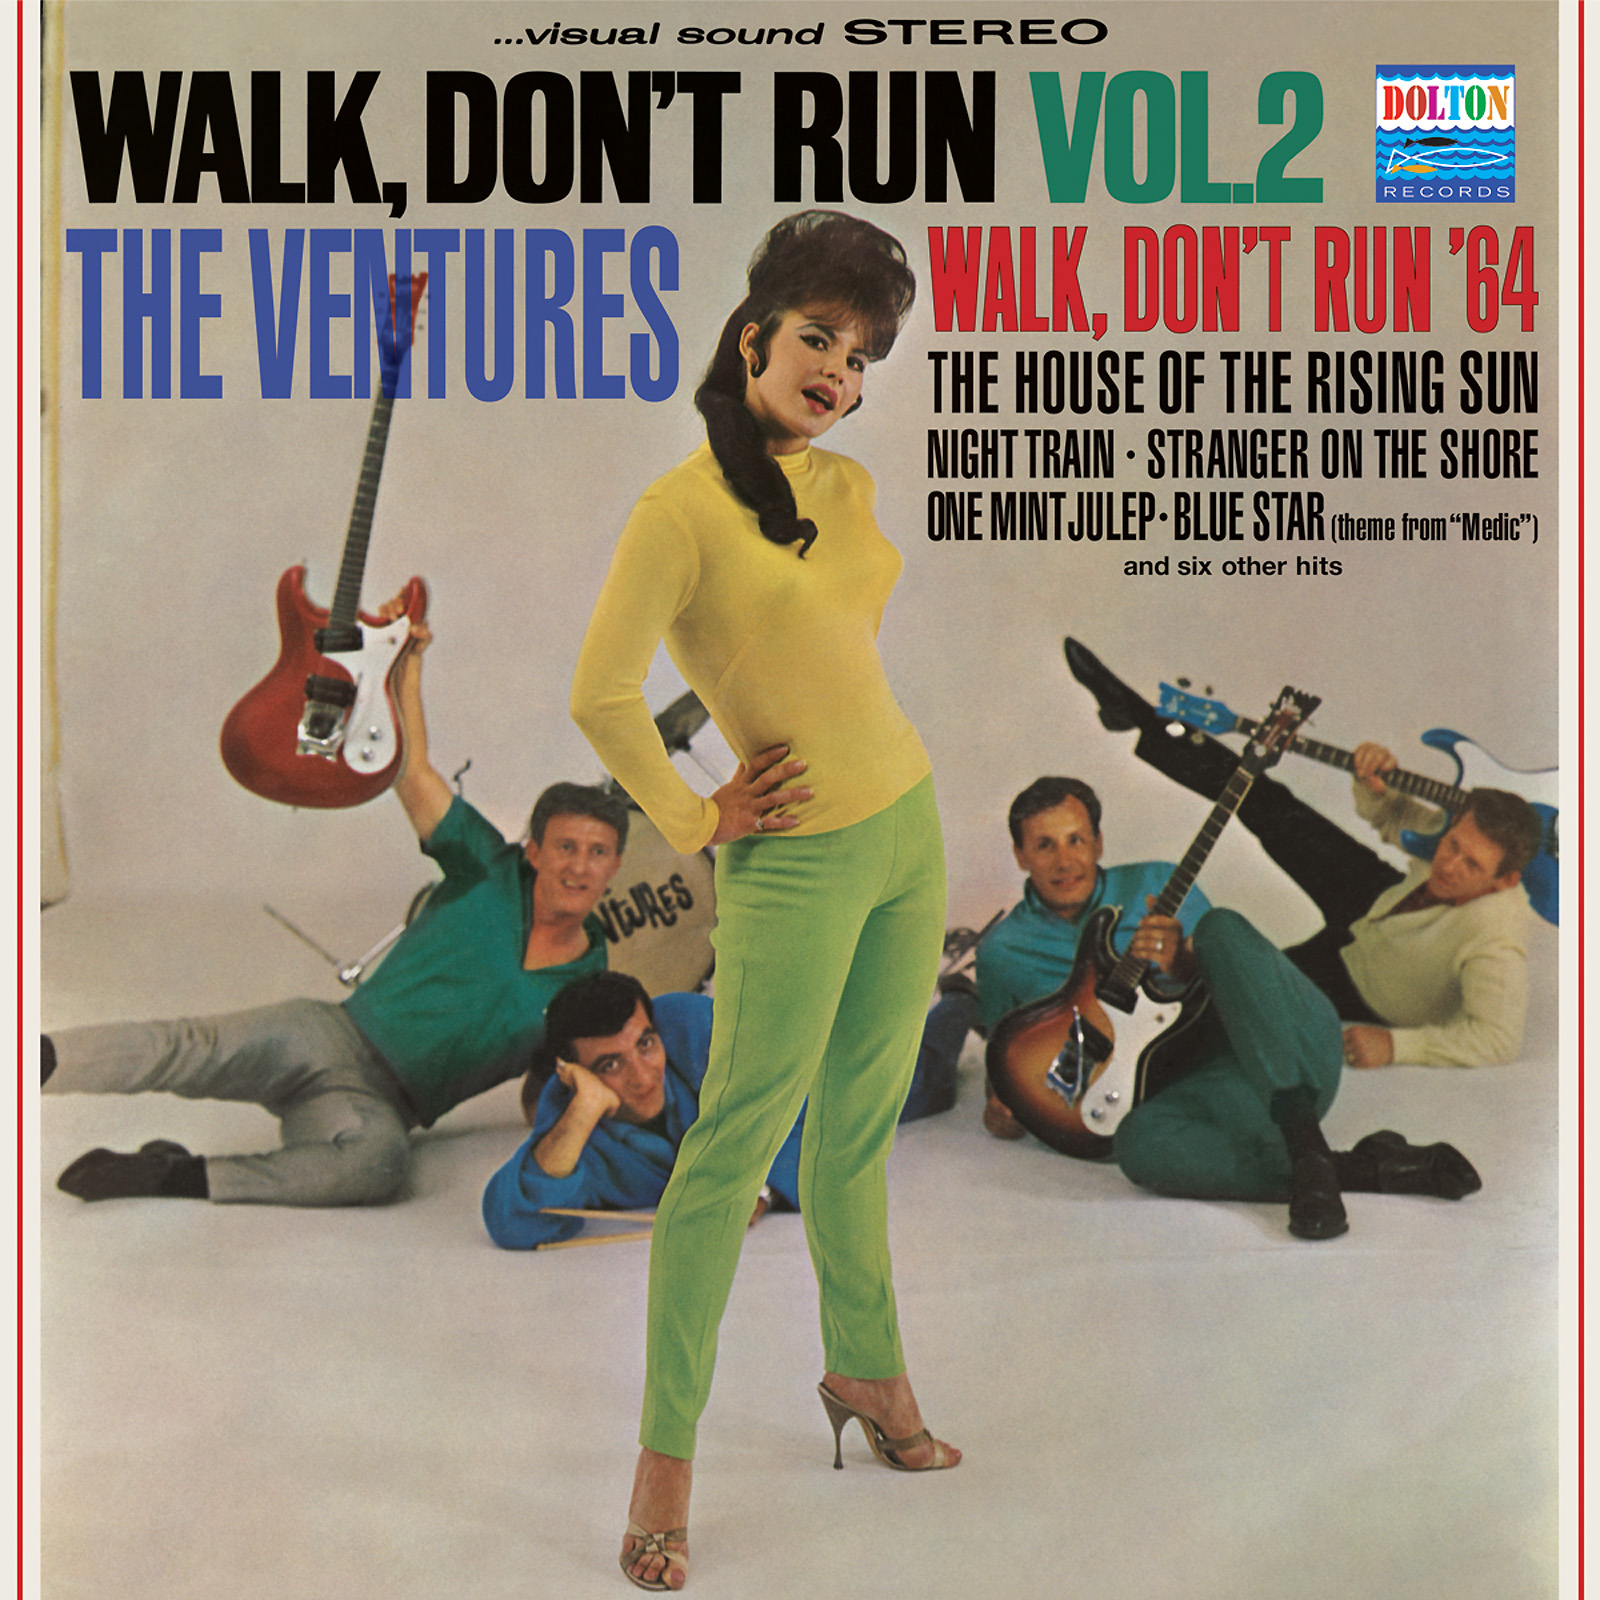 Ventures, The - Walk, Dont Run Vol. 2 LIMITED EDITION Colored Vinyl LP